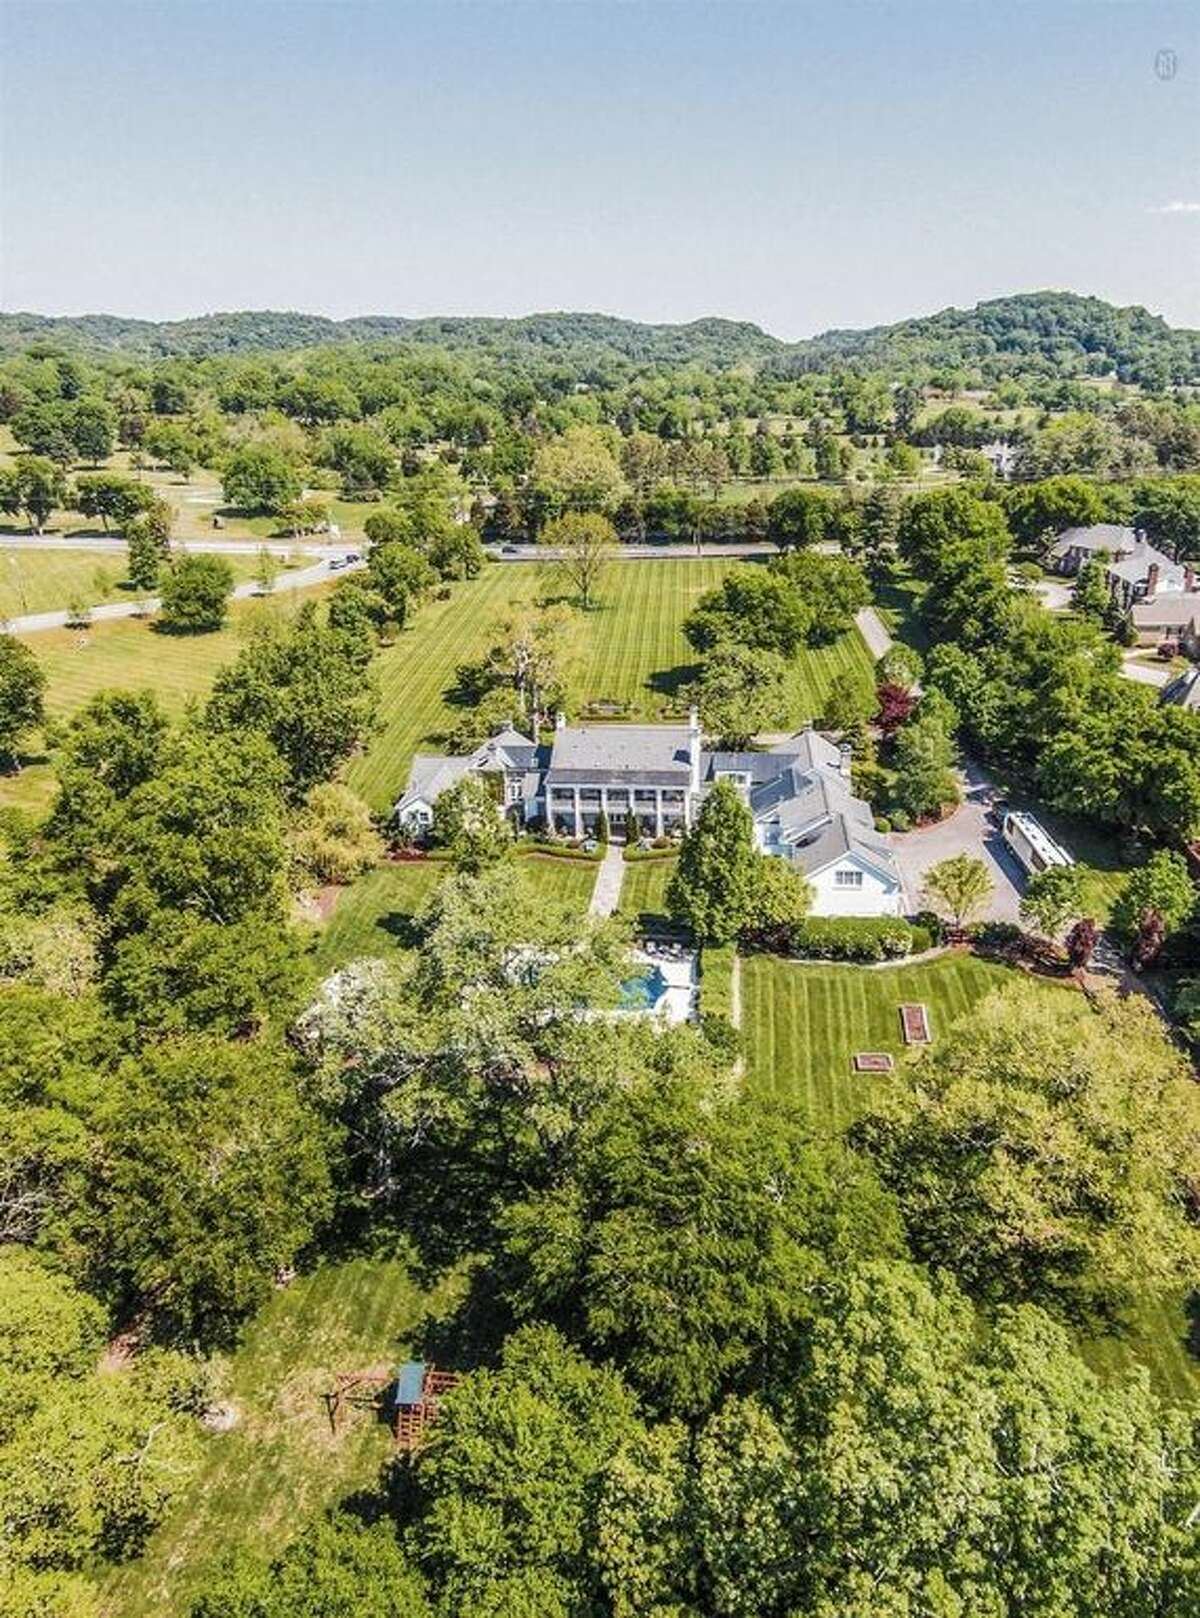 Country singer-songwriter and record executive Ronnie Dunn, formerly of the chart-topping duo Brooks & Dunn, recently bought 6 acres of prime Nashville horse property from Thomas F. Frist Jr., the richest man in Tennessee.